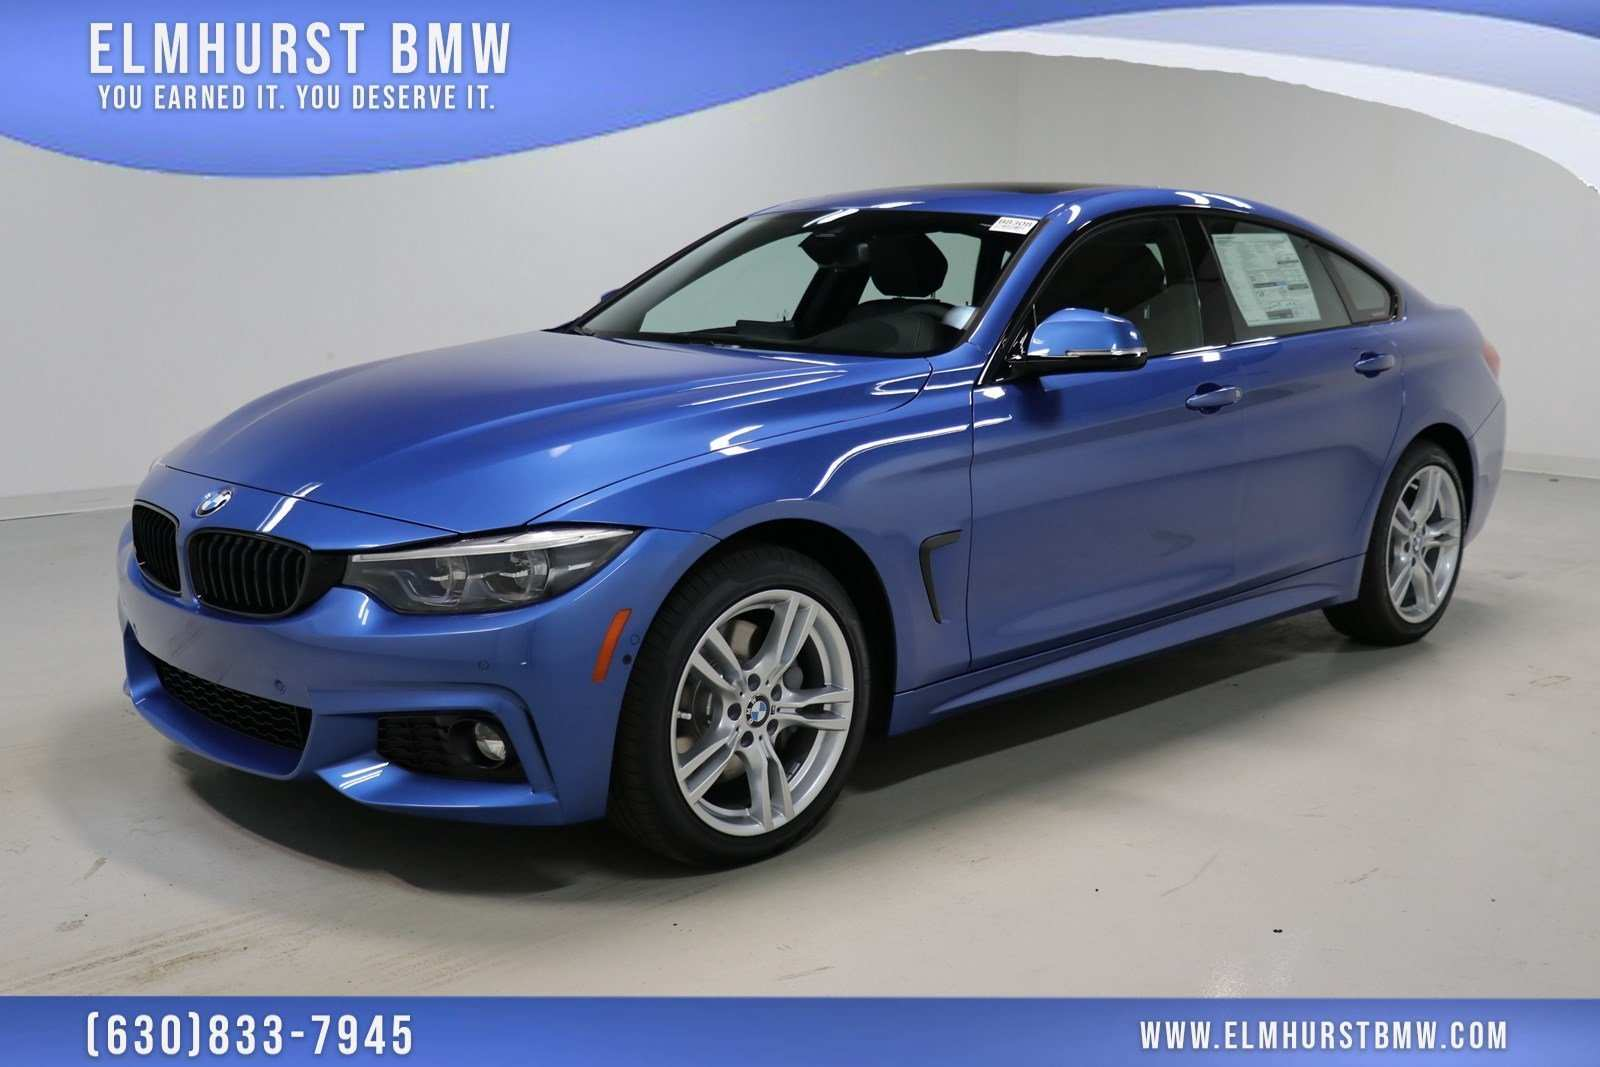 61 Best Review 2019 Bmw 650I Xdrive Gran Coupe Performance by 2019 Bmw 650I Xdrive Gran Coupe